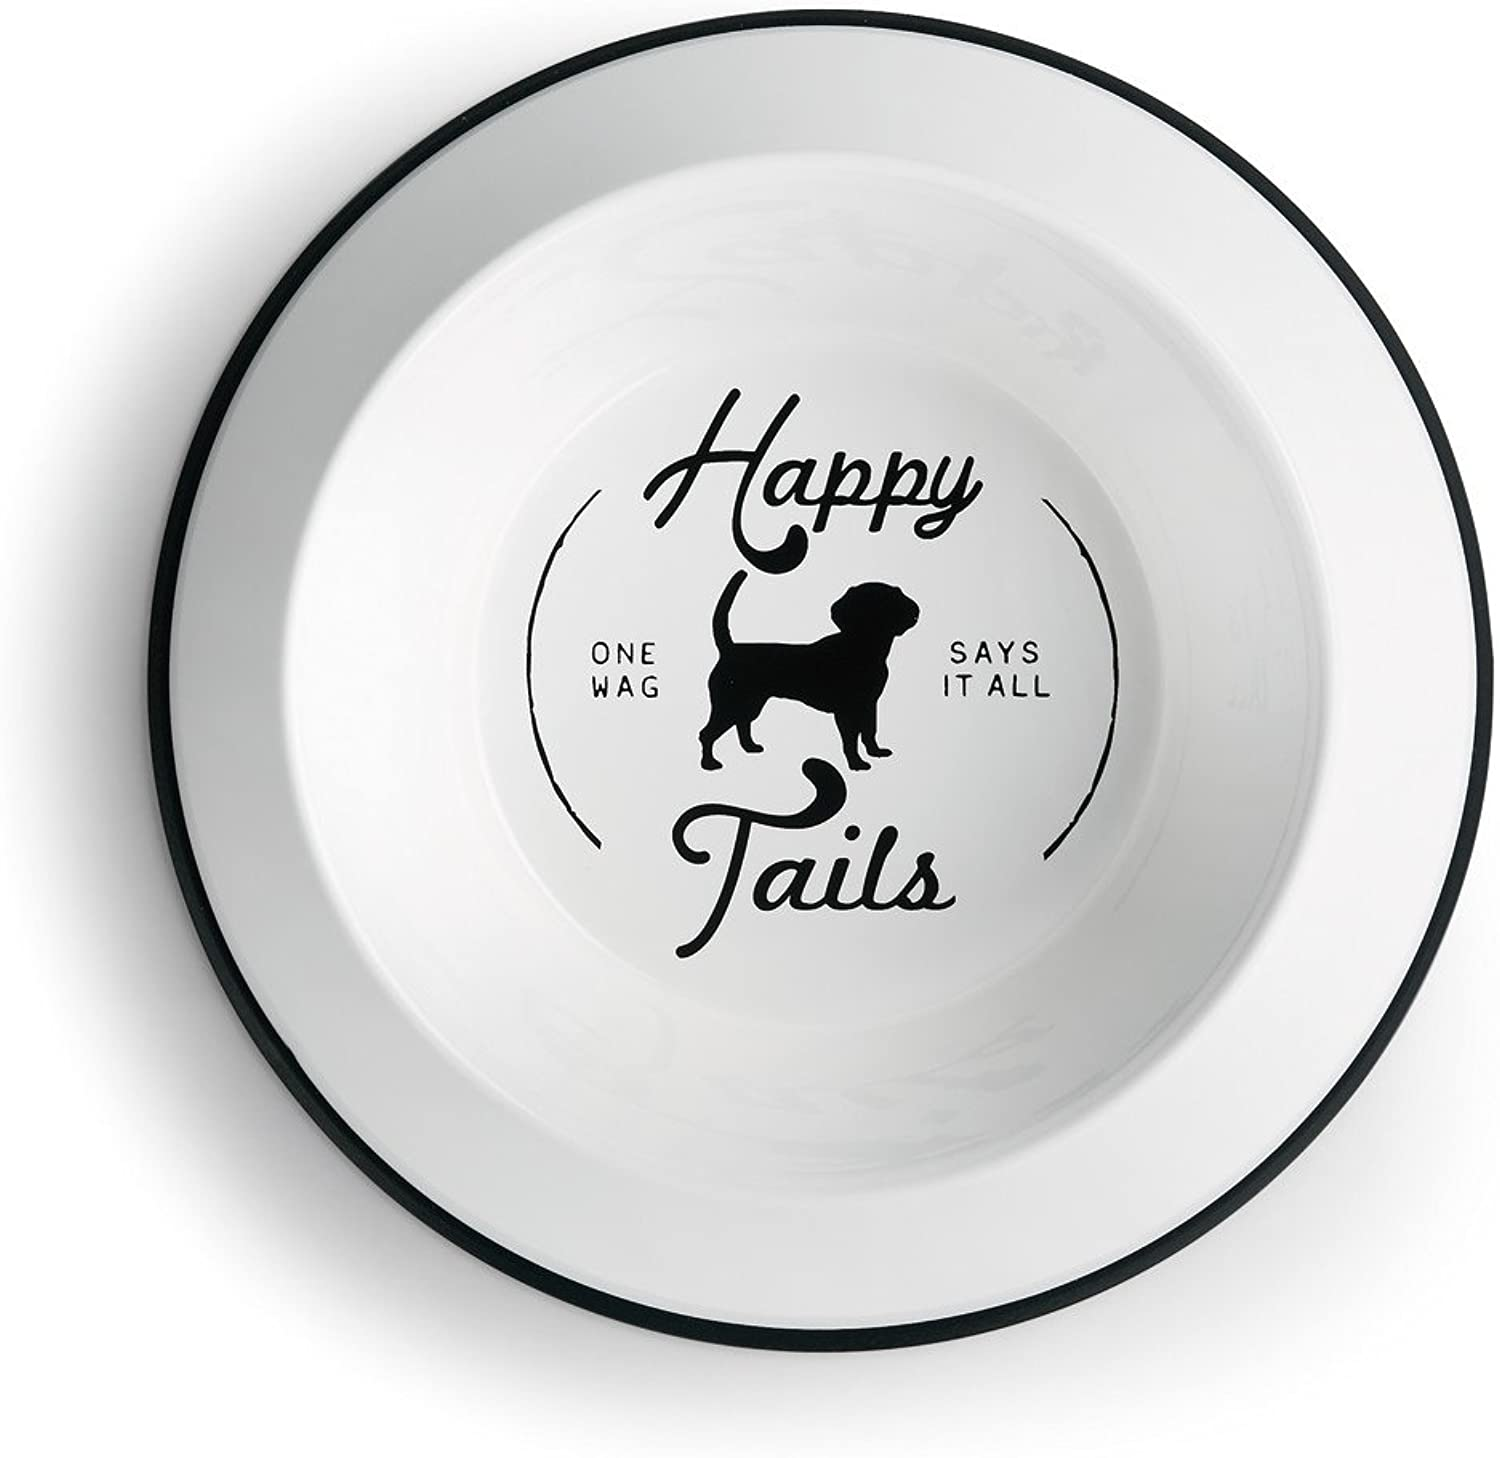 DEMDACO Happy Tails One Wag Dice tutto White 9 pollici Diameter Metal Dog Bowl